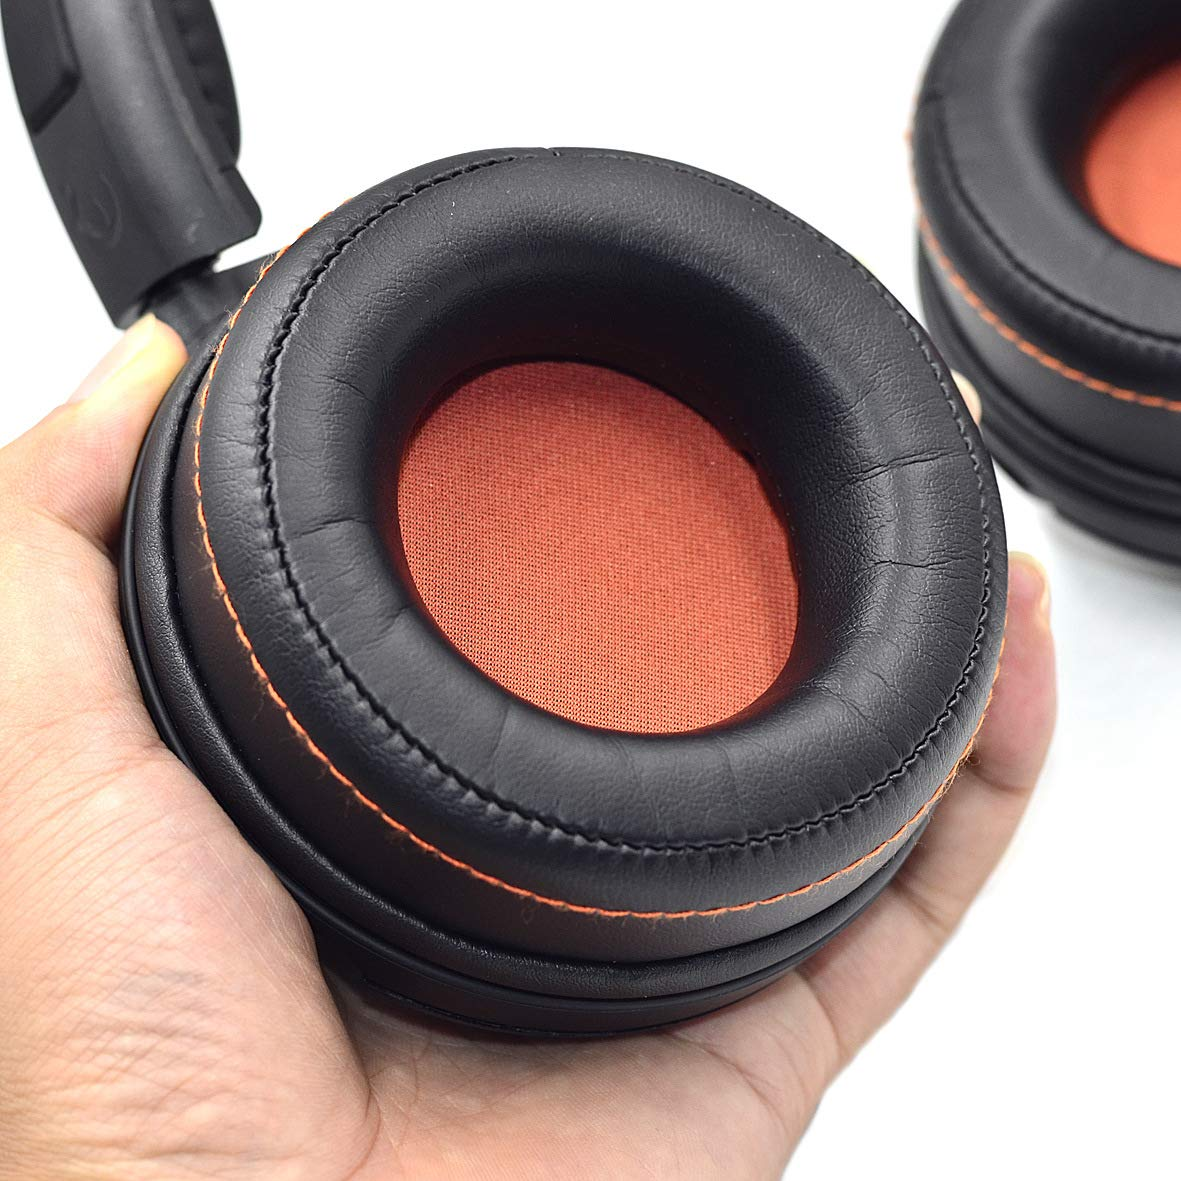 Replacement Earpads Ear Pads Cushion for <font><b>SteelSeries</b></font> <font><b>Siberia</b></font> 840 <font><b>800</b></font> Wireless Headset Dolby 7.1 Headphone image